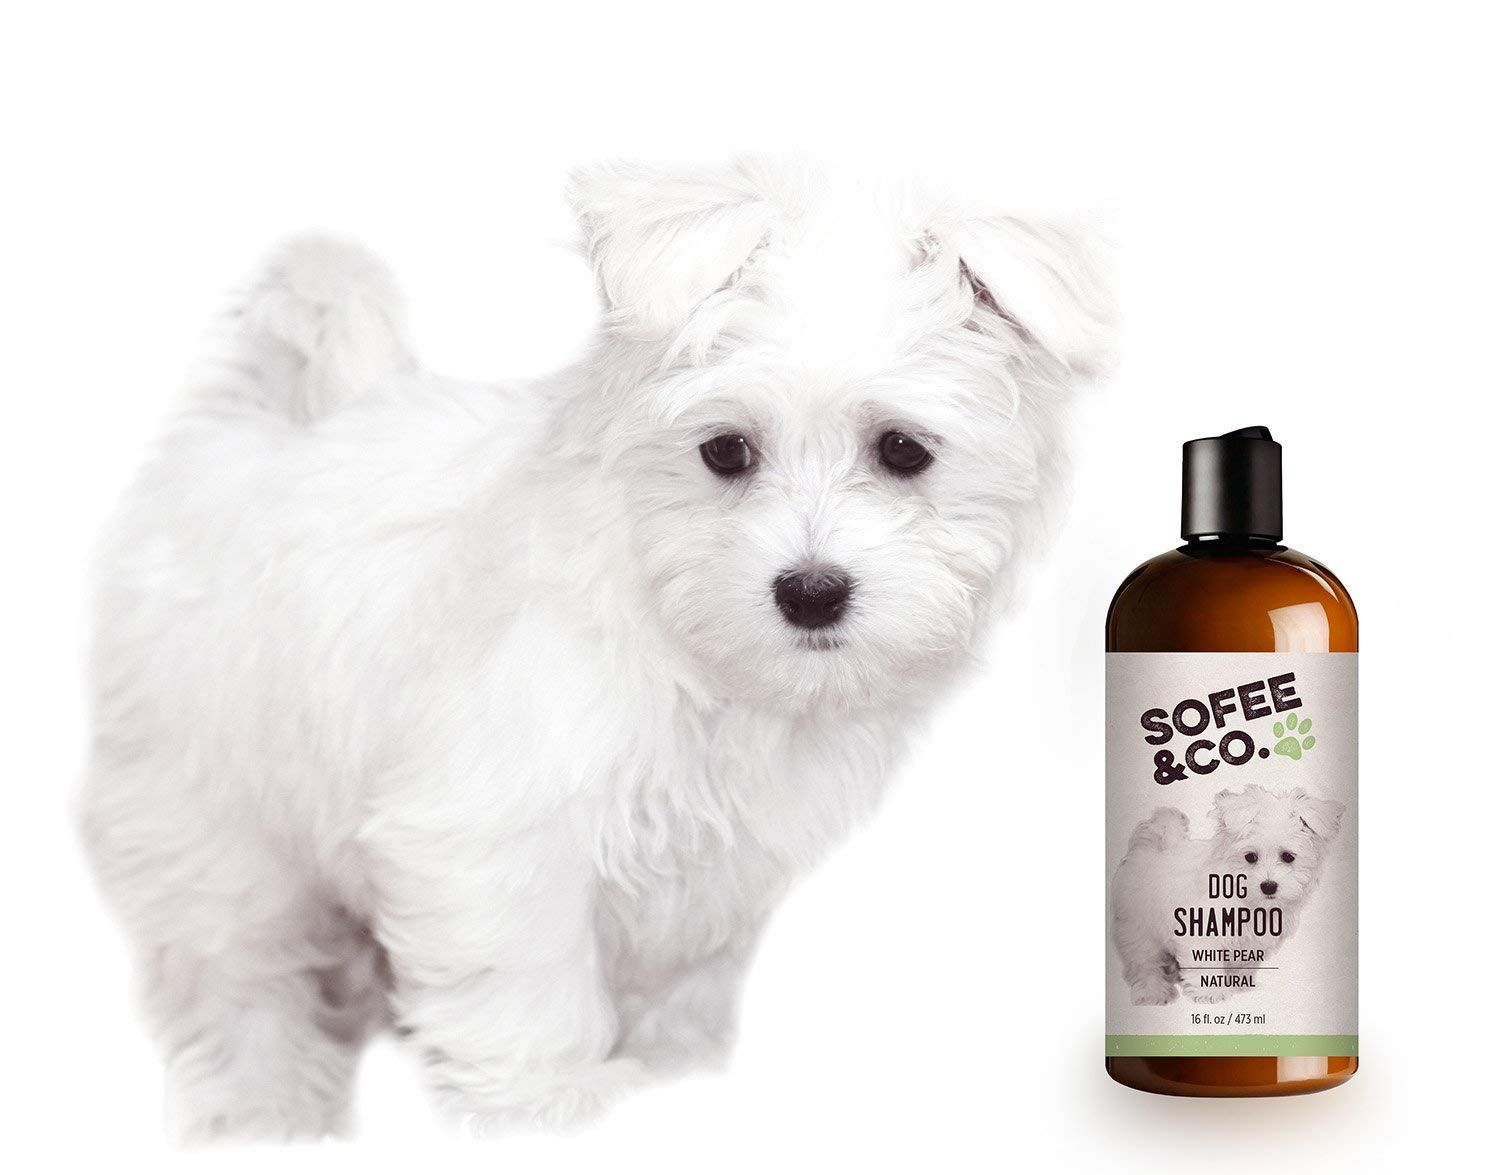 Best Shampoo For Goldendoodle Puppy Top 5 Picks In 2020 Dog Shampoo Natural Dog Shampoo Goldendoodle